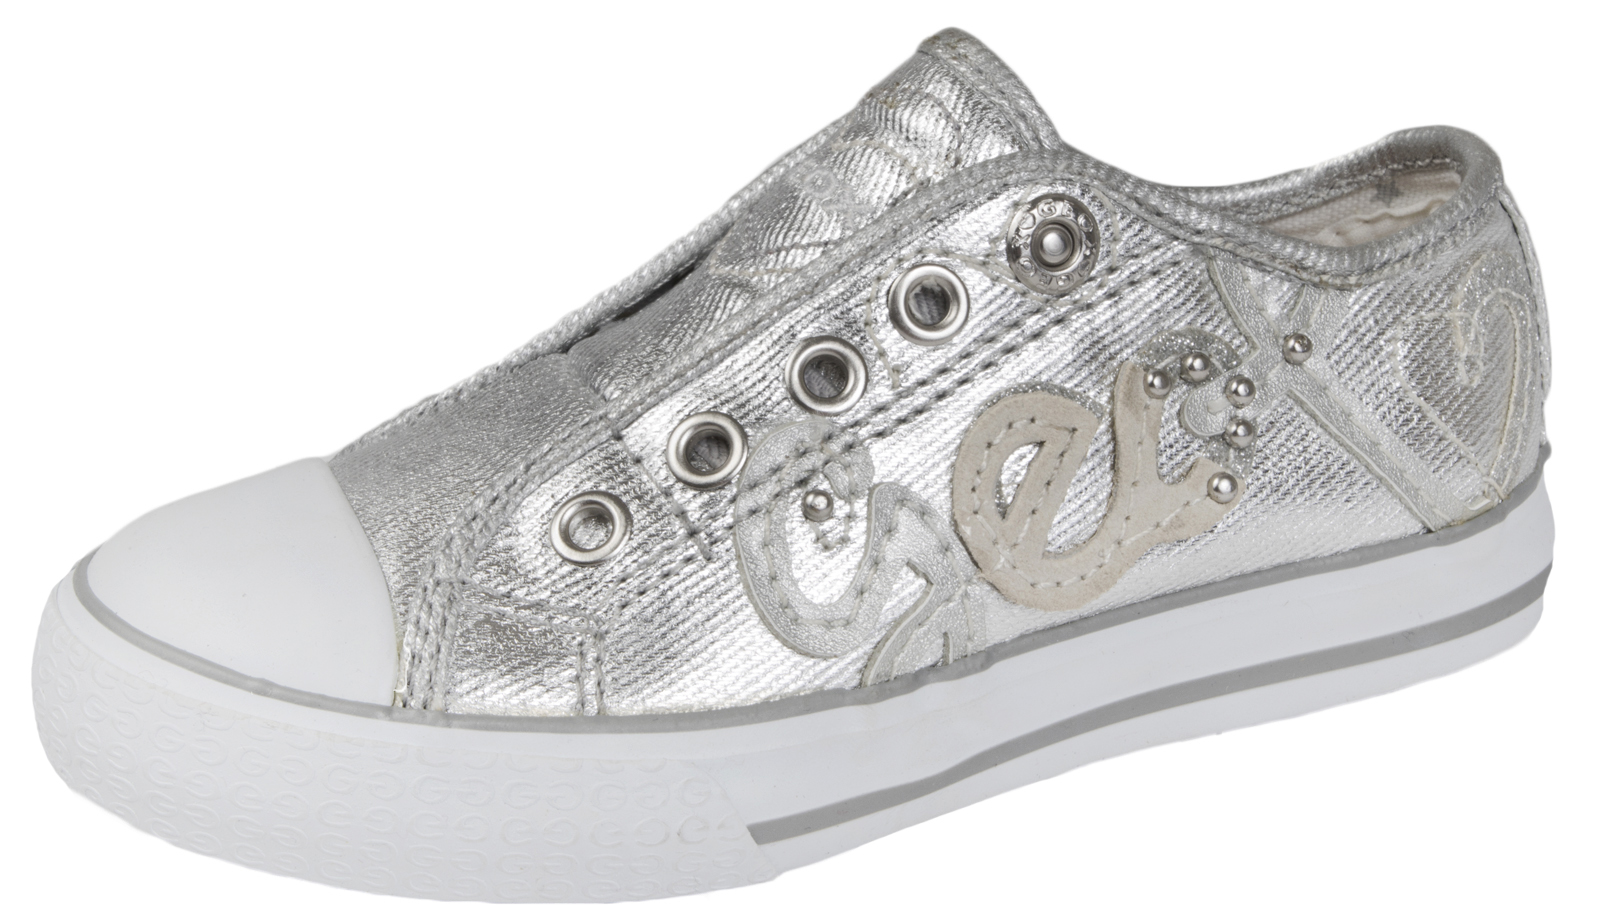 skechers free heelyswholesale shoesfree trainers usa shoes girls high wholesale heelys uptown glitter disco p online silver